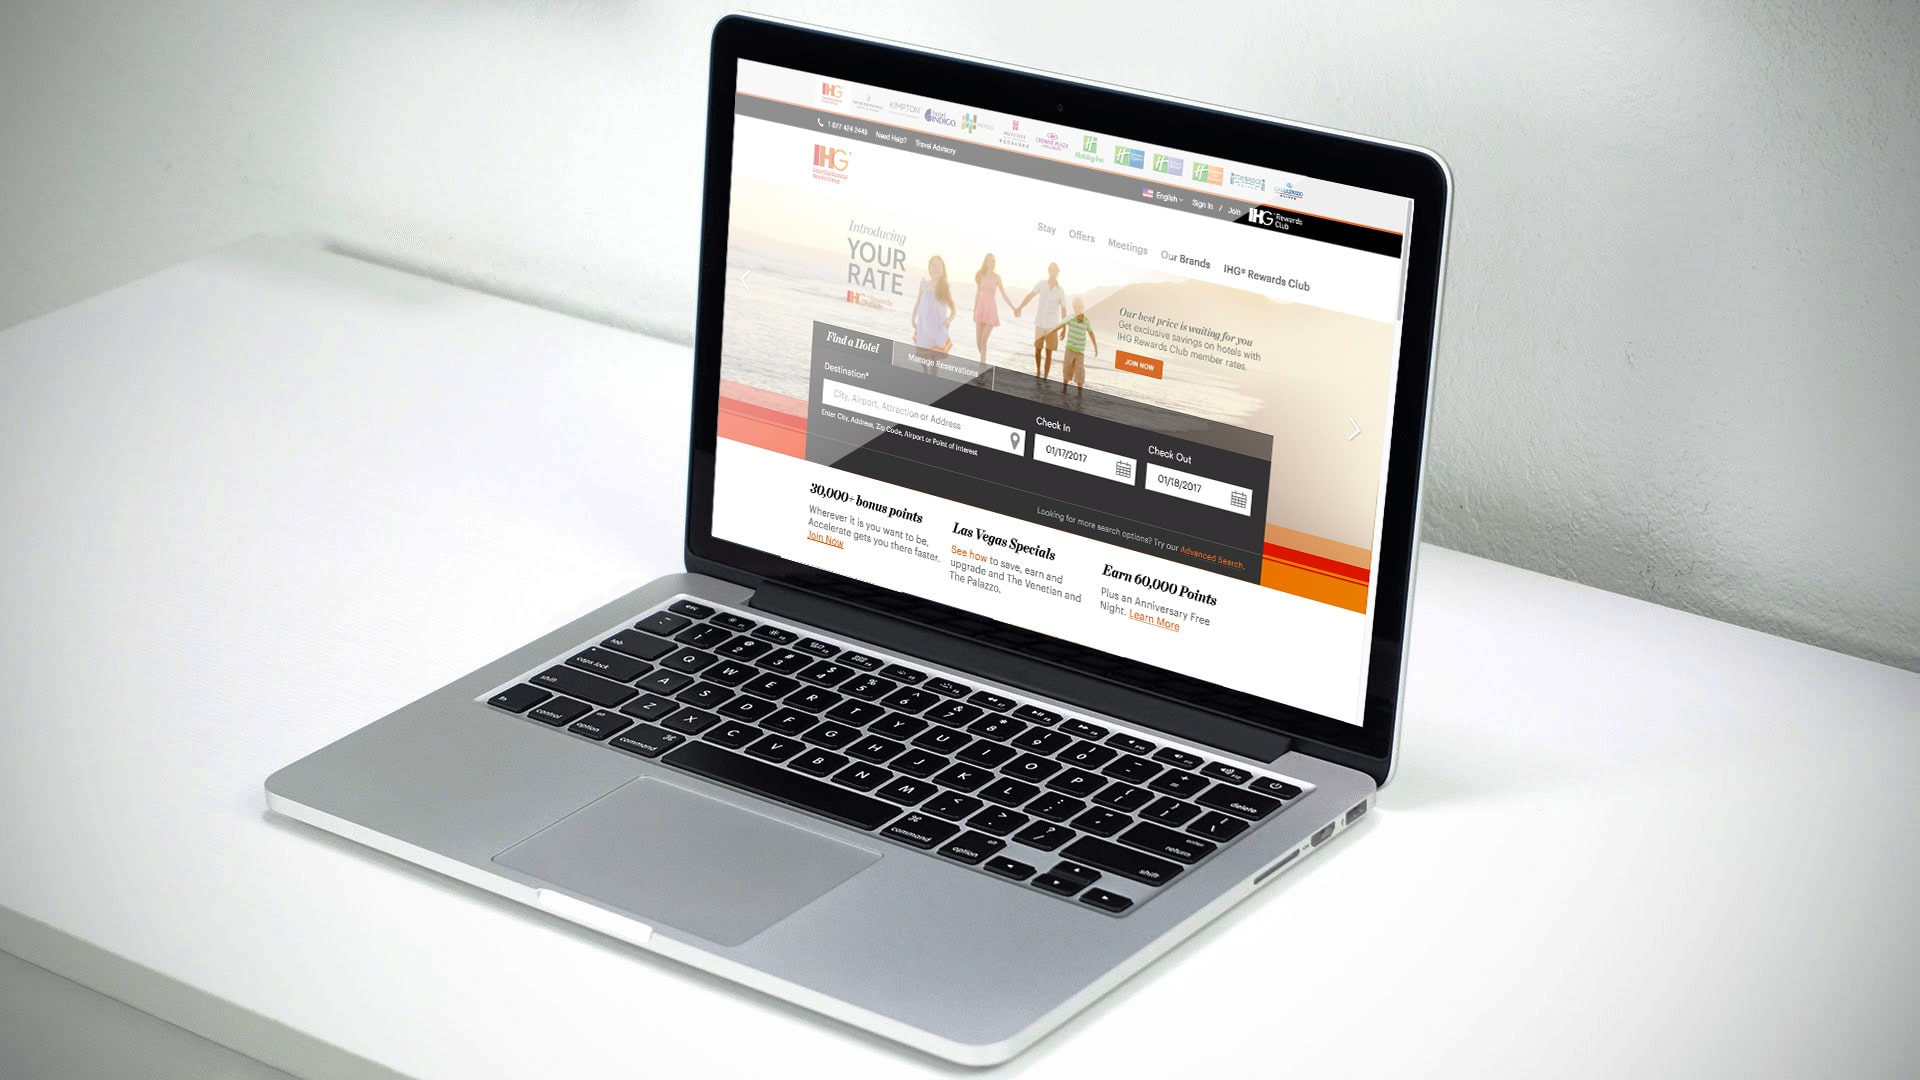 A computer featuring the homepage of ihg.com